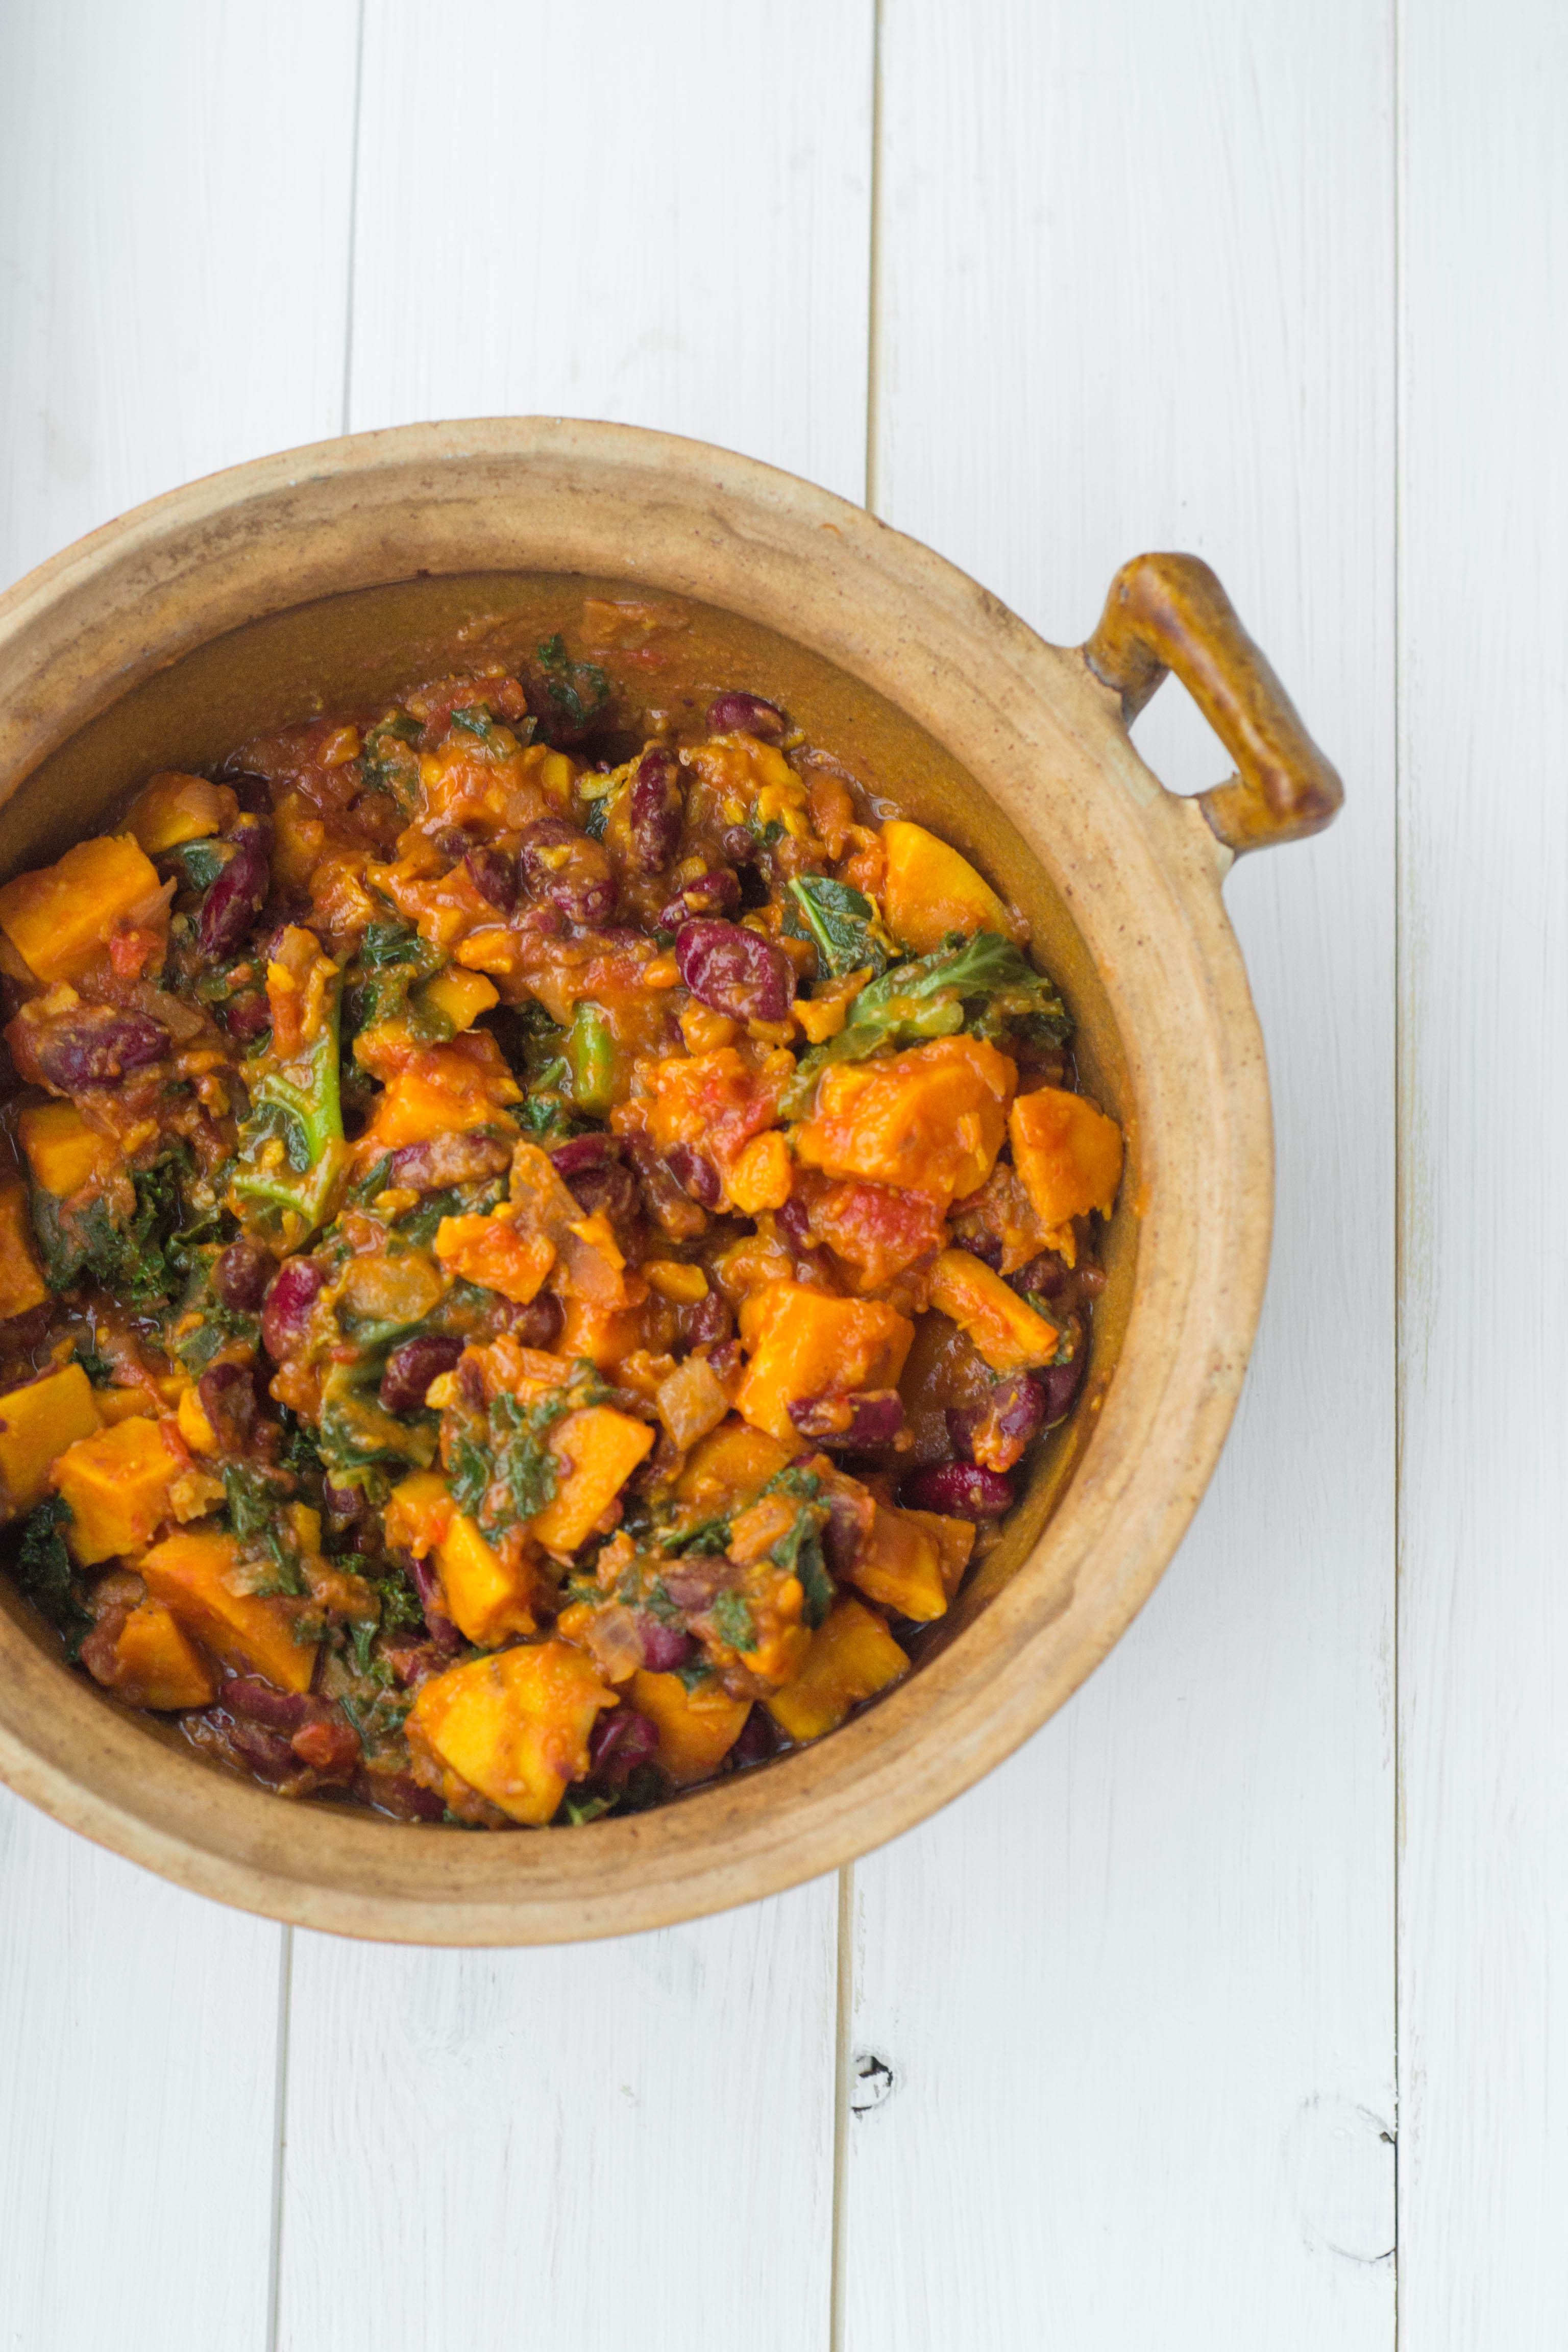 Sweet potato kale chili wallflower kitchen im in the process of re visiting some old recipes and giving them a re vamp with some new photos and video instructions so you might see some familiar forumfinder Choice Image